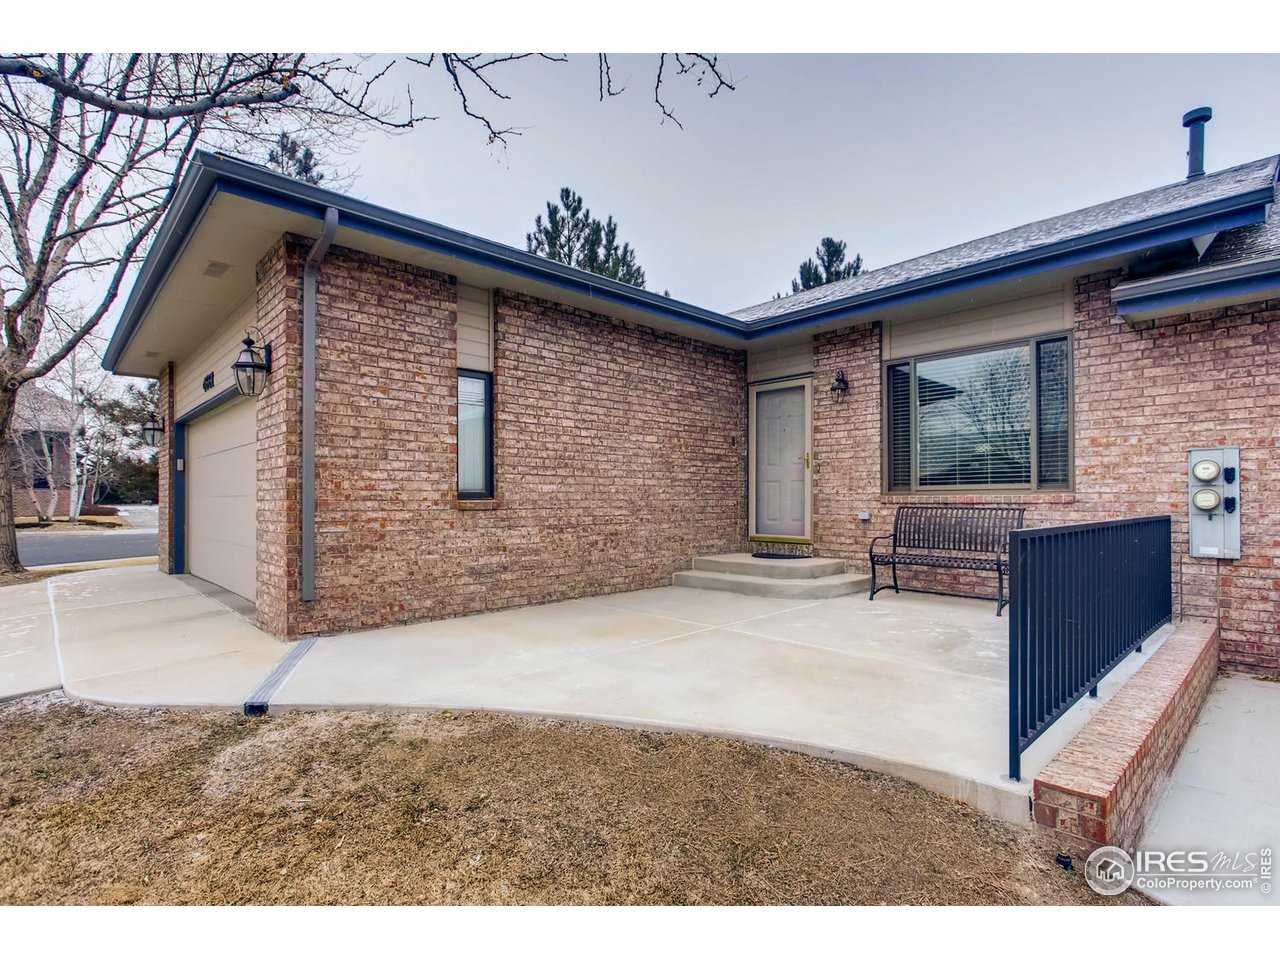 4661 23RD ST, GREELEY, CO 80634